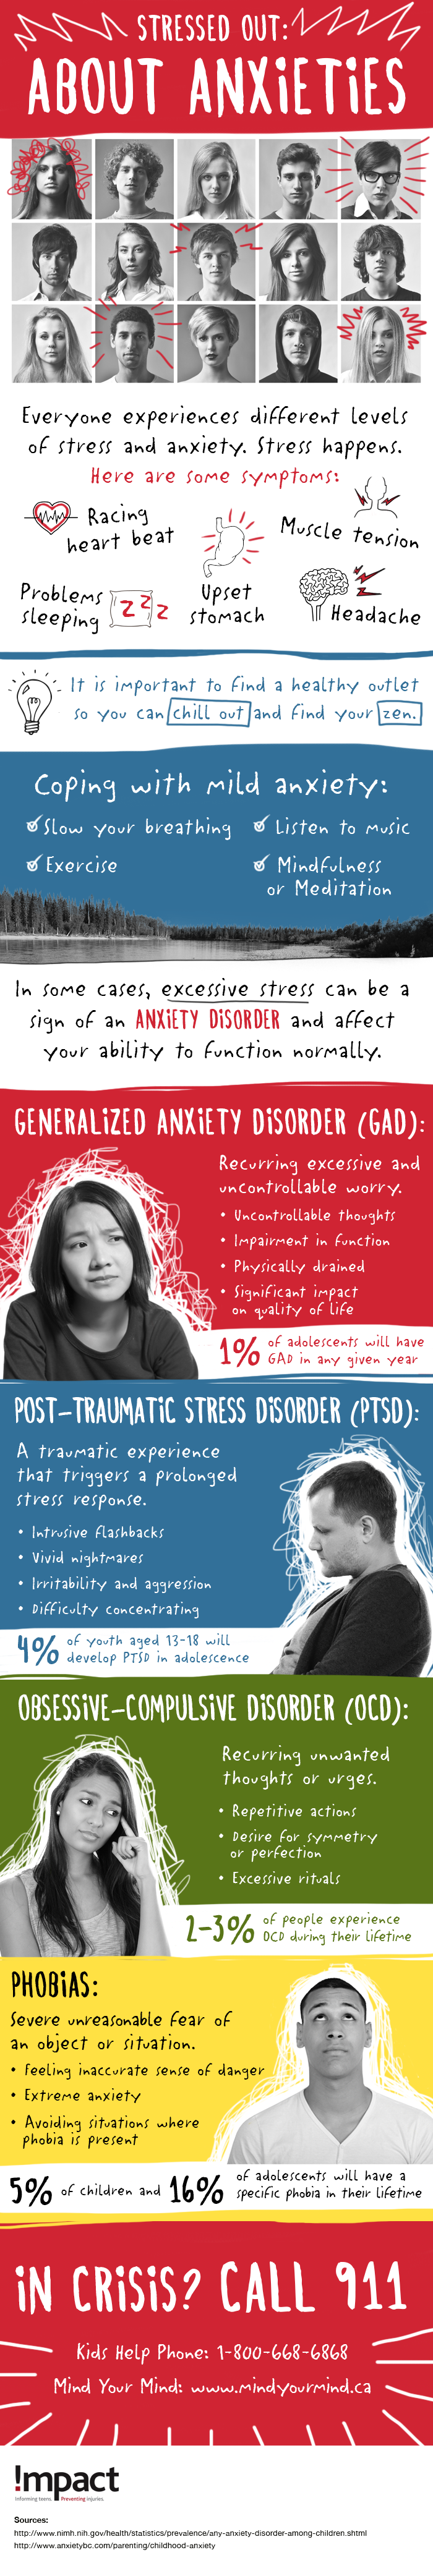 StressedOutAnxietiesInfographic-FA